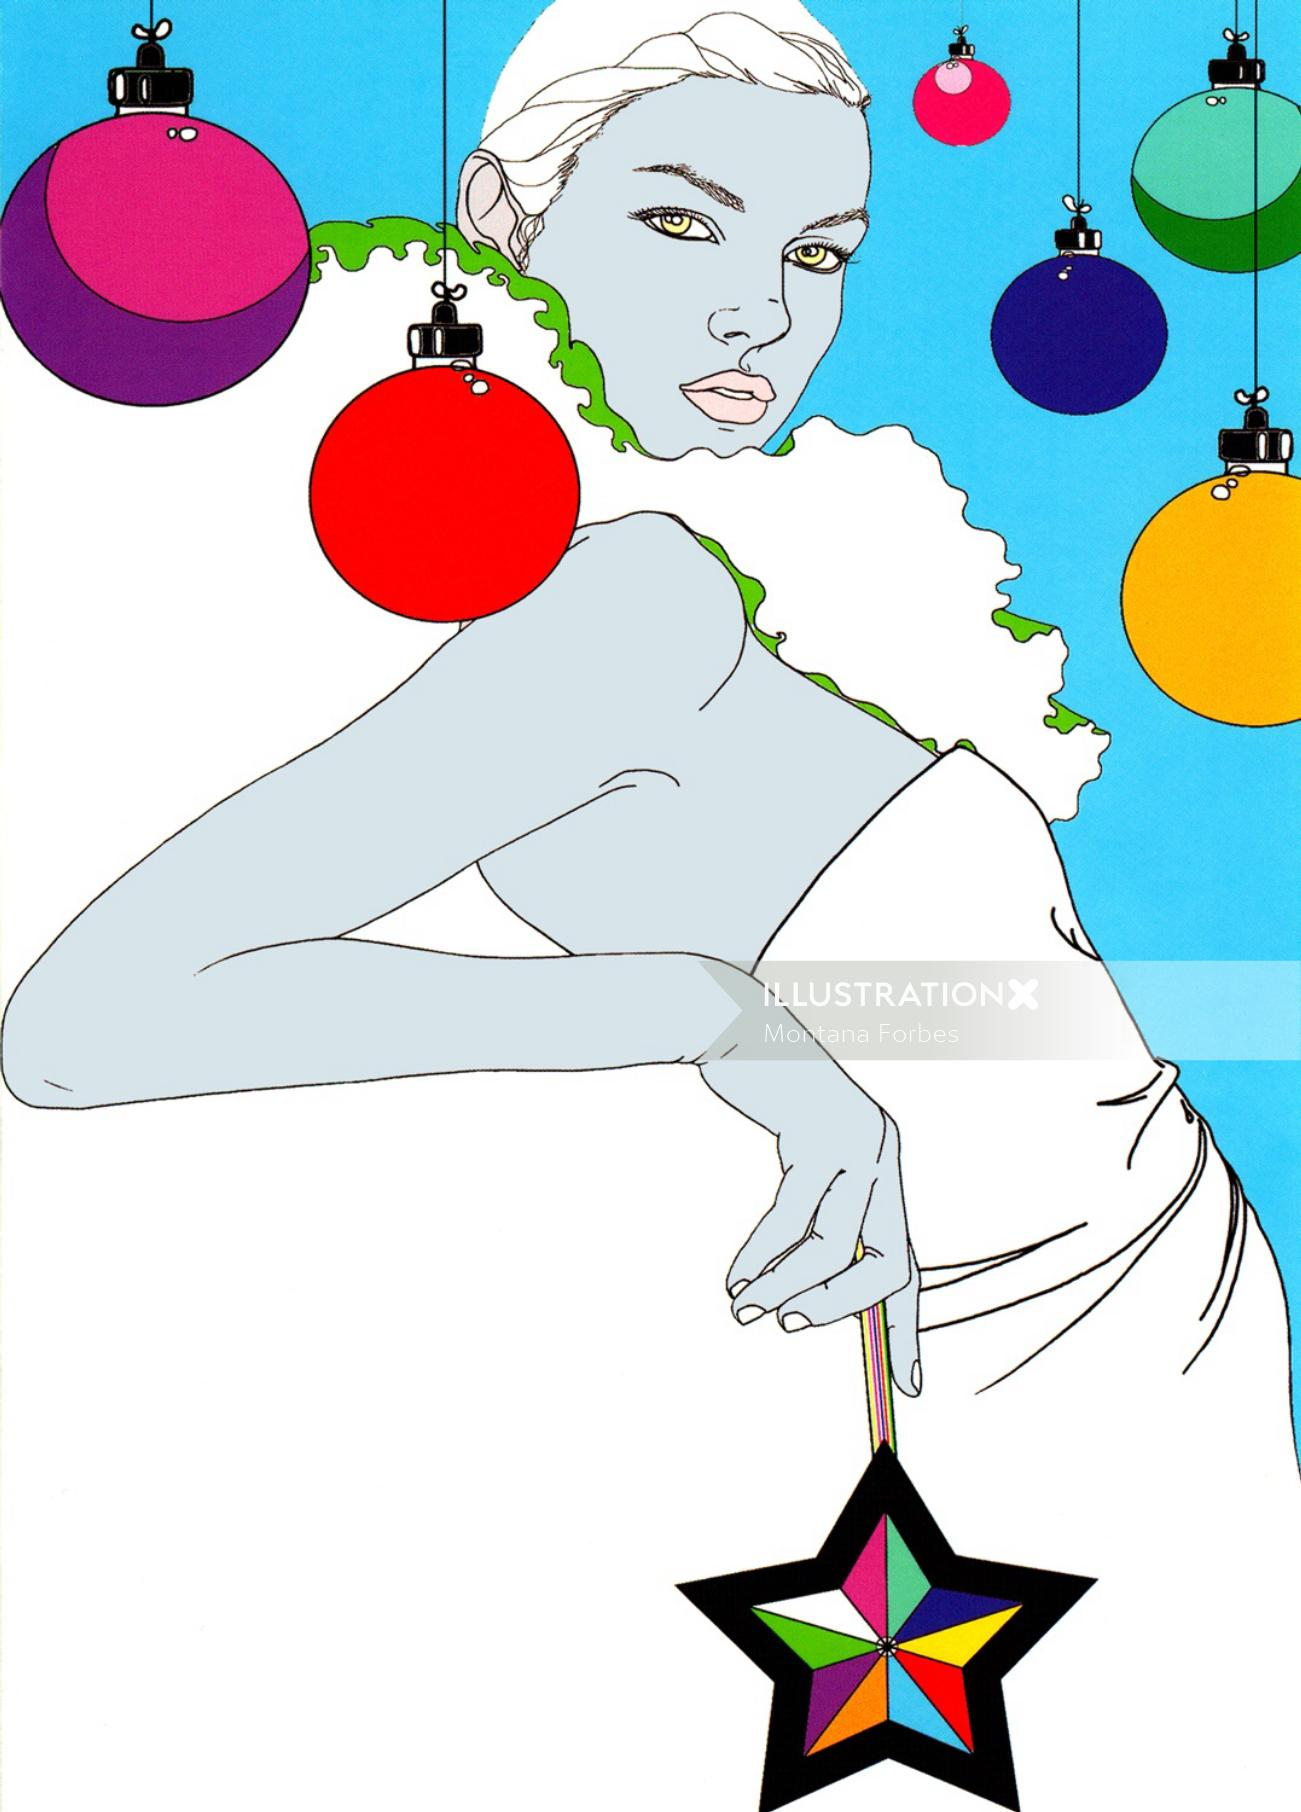 Female fashion illustration by Montana Forbes